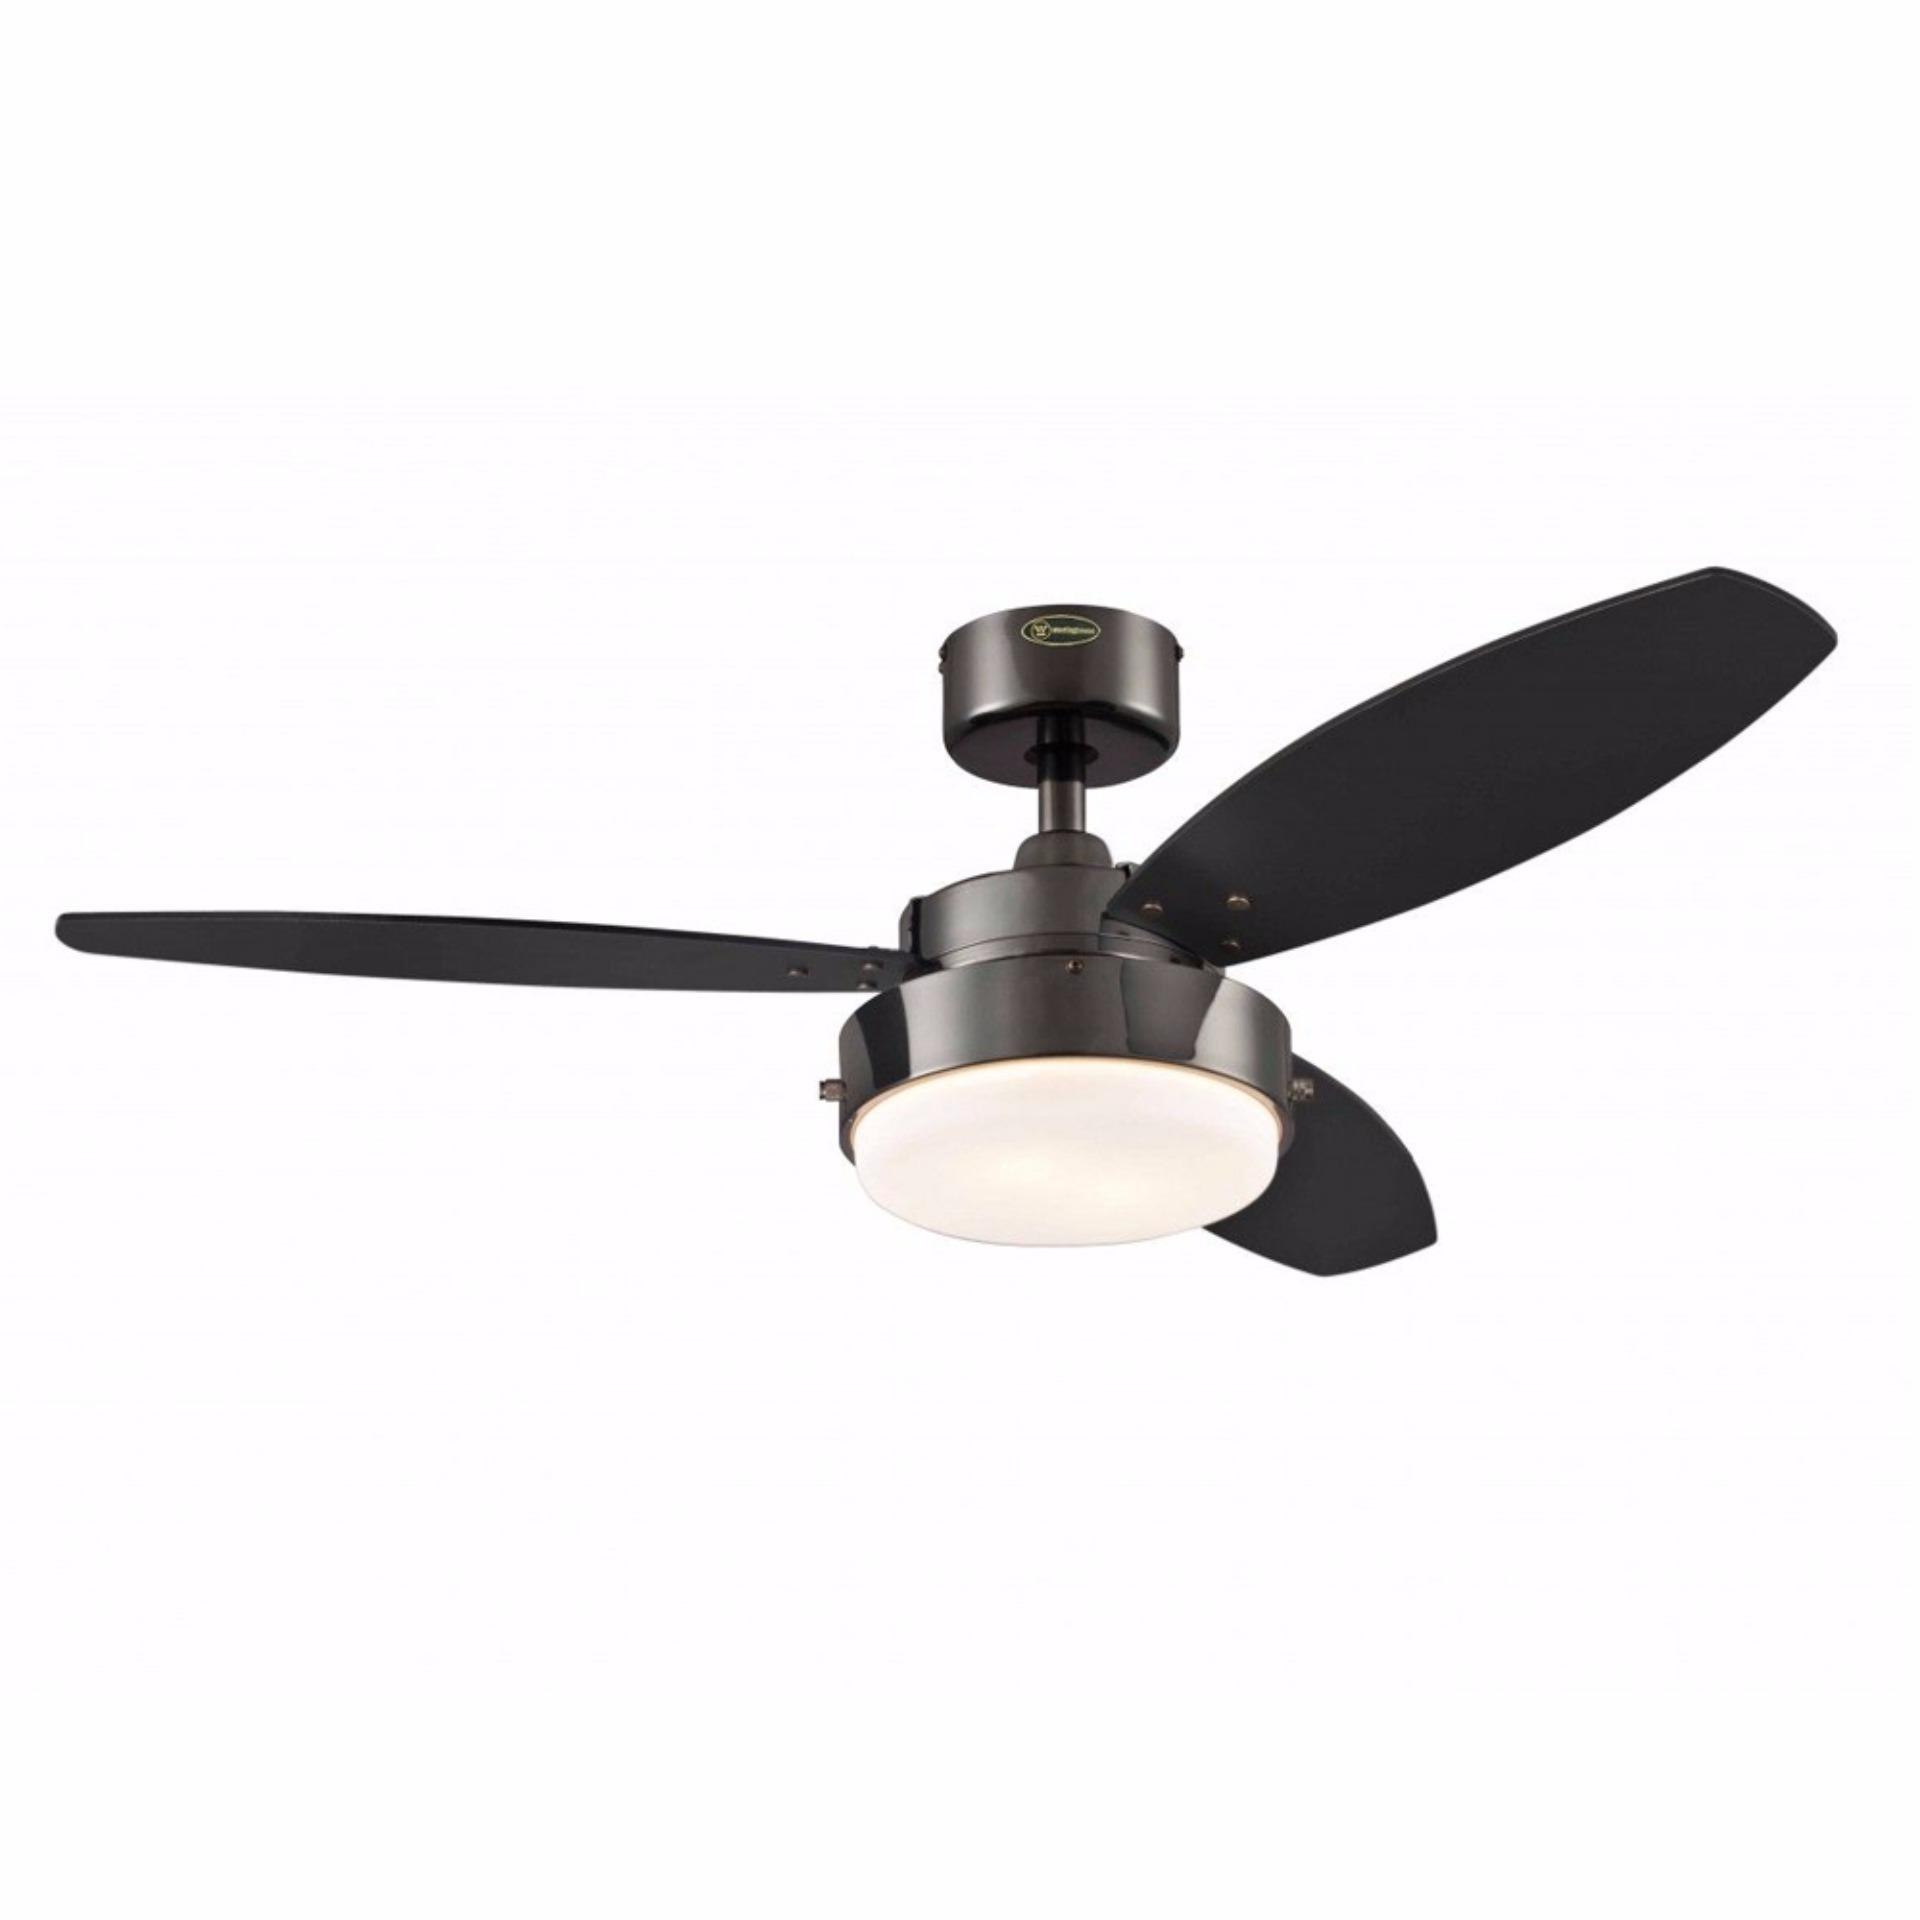 Ceiling Fan Philippines Fans Ideas Hanabishi Electric Capacitor Westinghouse 78764 42 Alloy Black Graphite